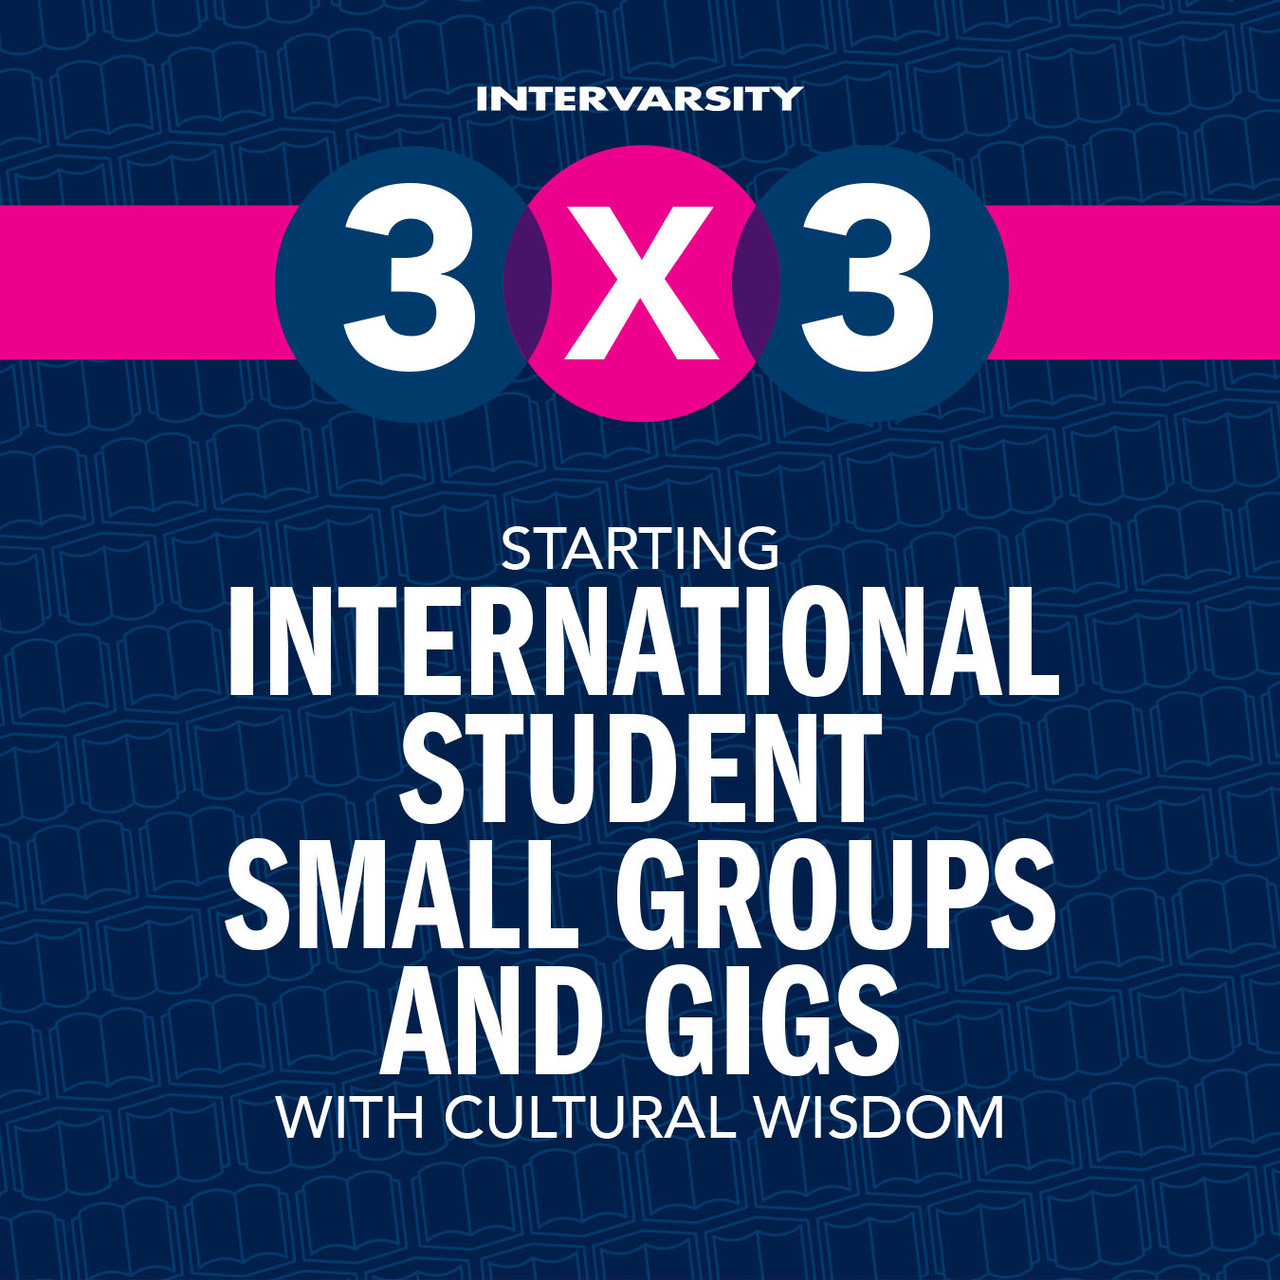 Starting International Small Groups and GIGs 3x3 Quick Guide (bundle of 10)